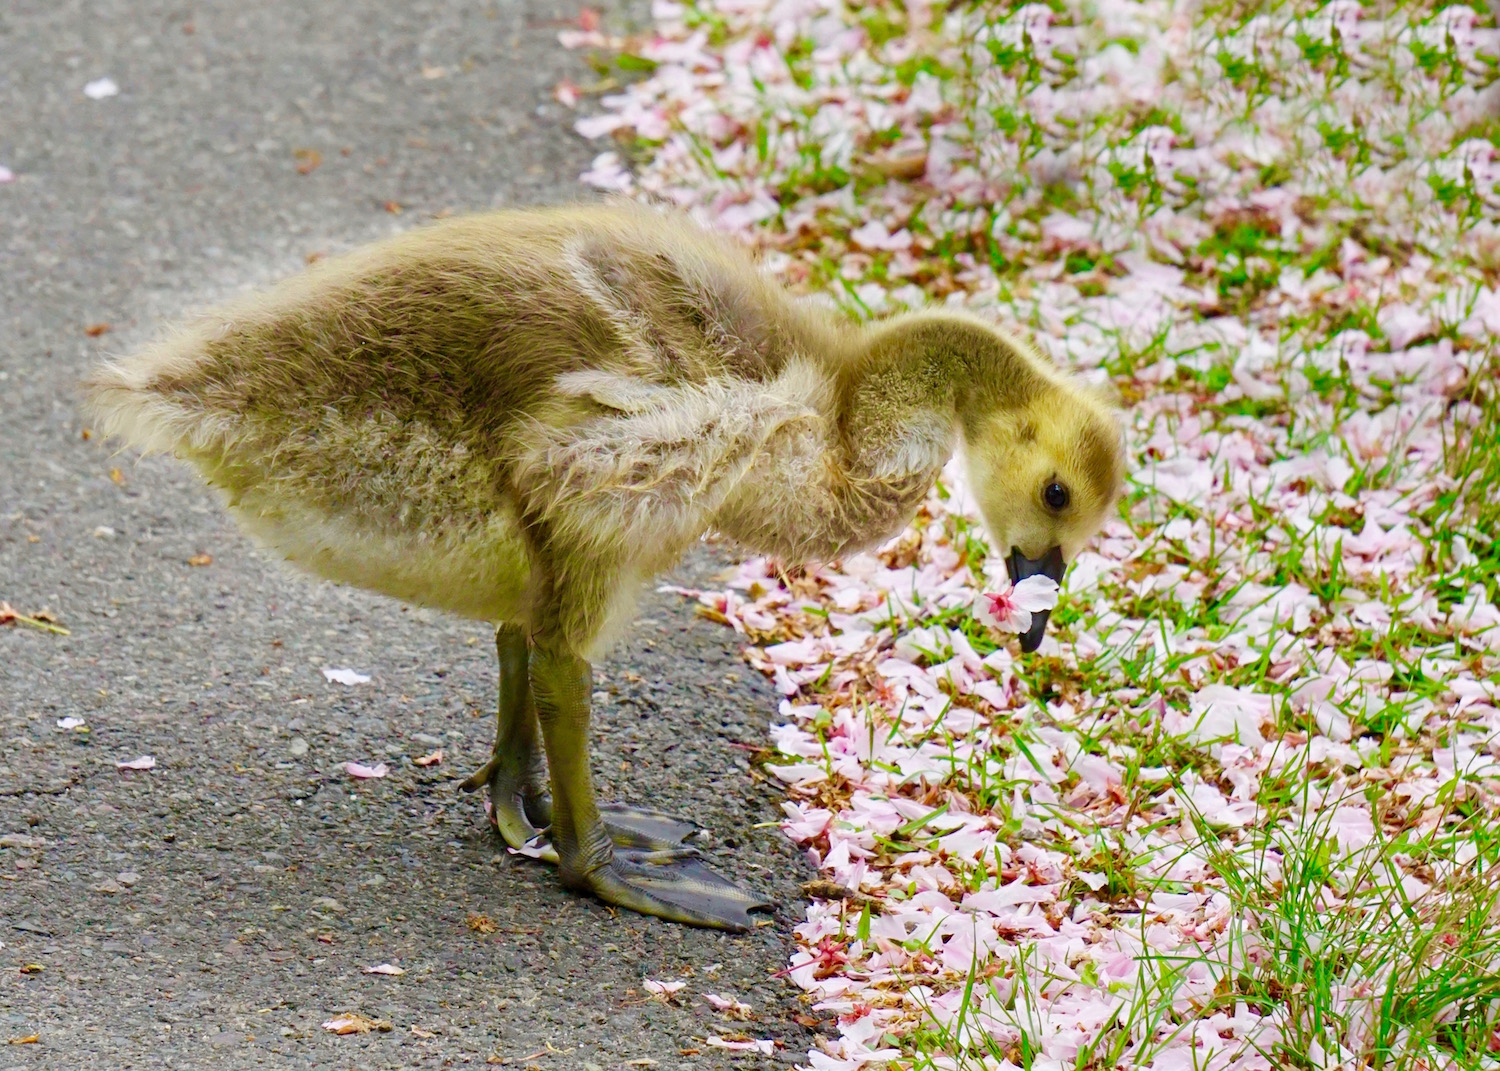 Duckling with blossom